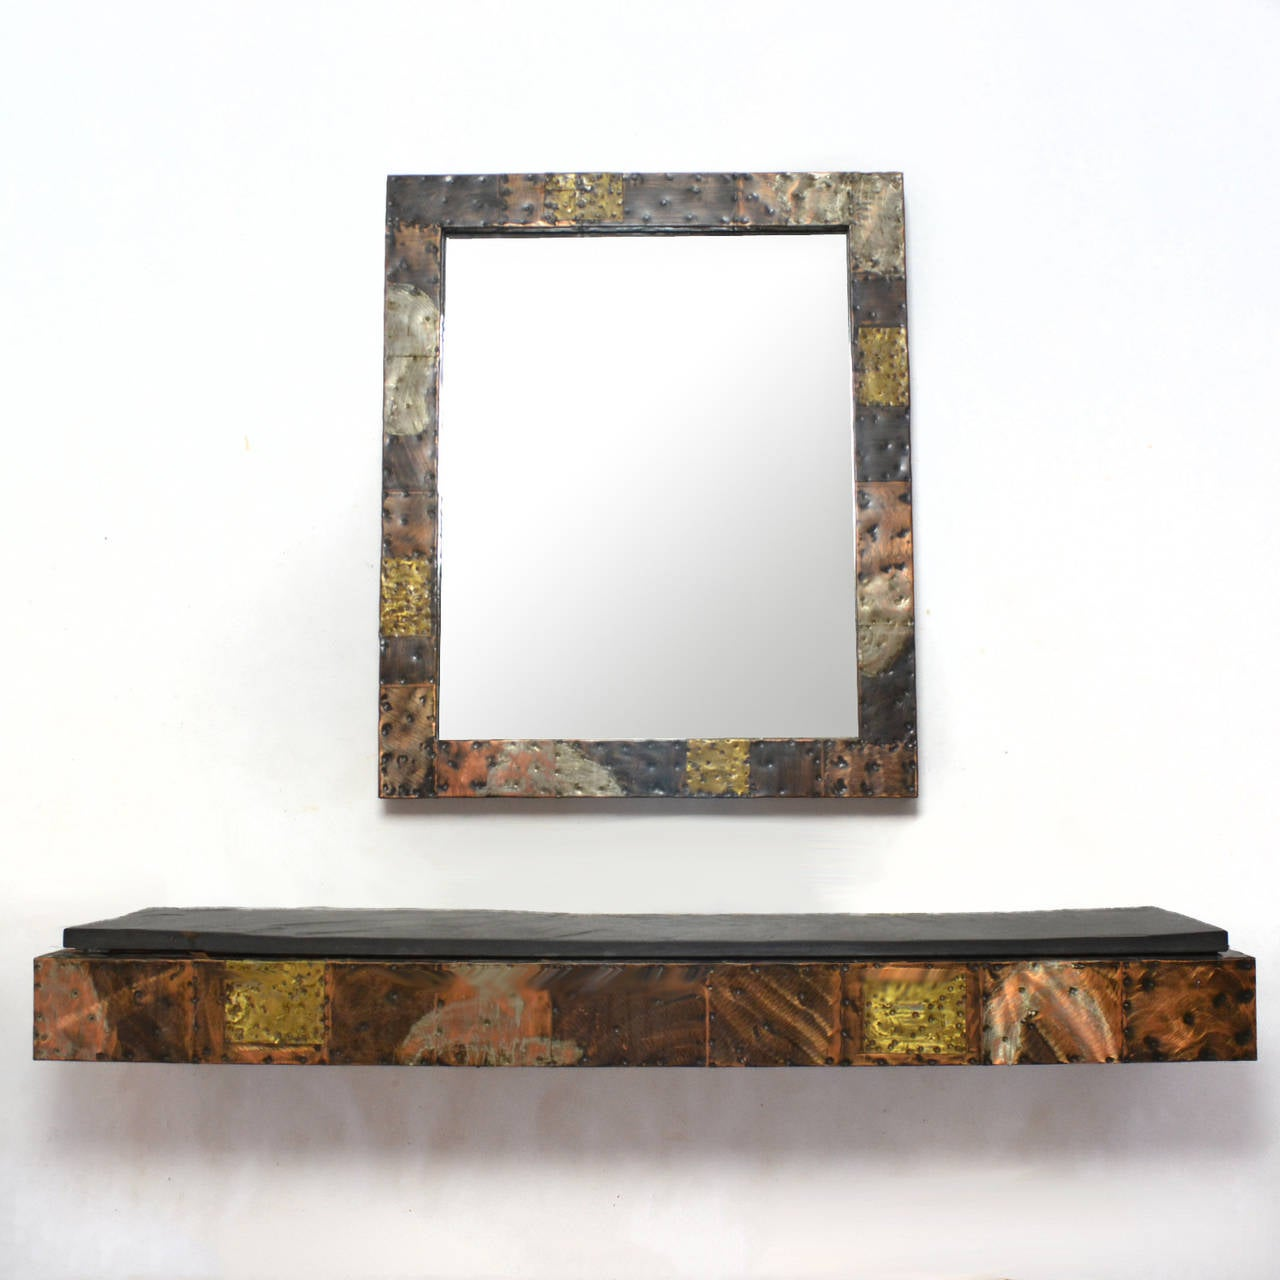 Paul Evans Patchwork Mirror and Wall-Mounted Console 10